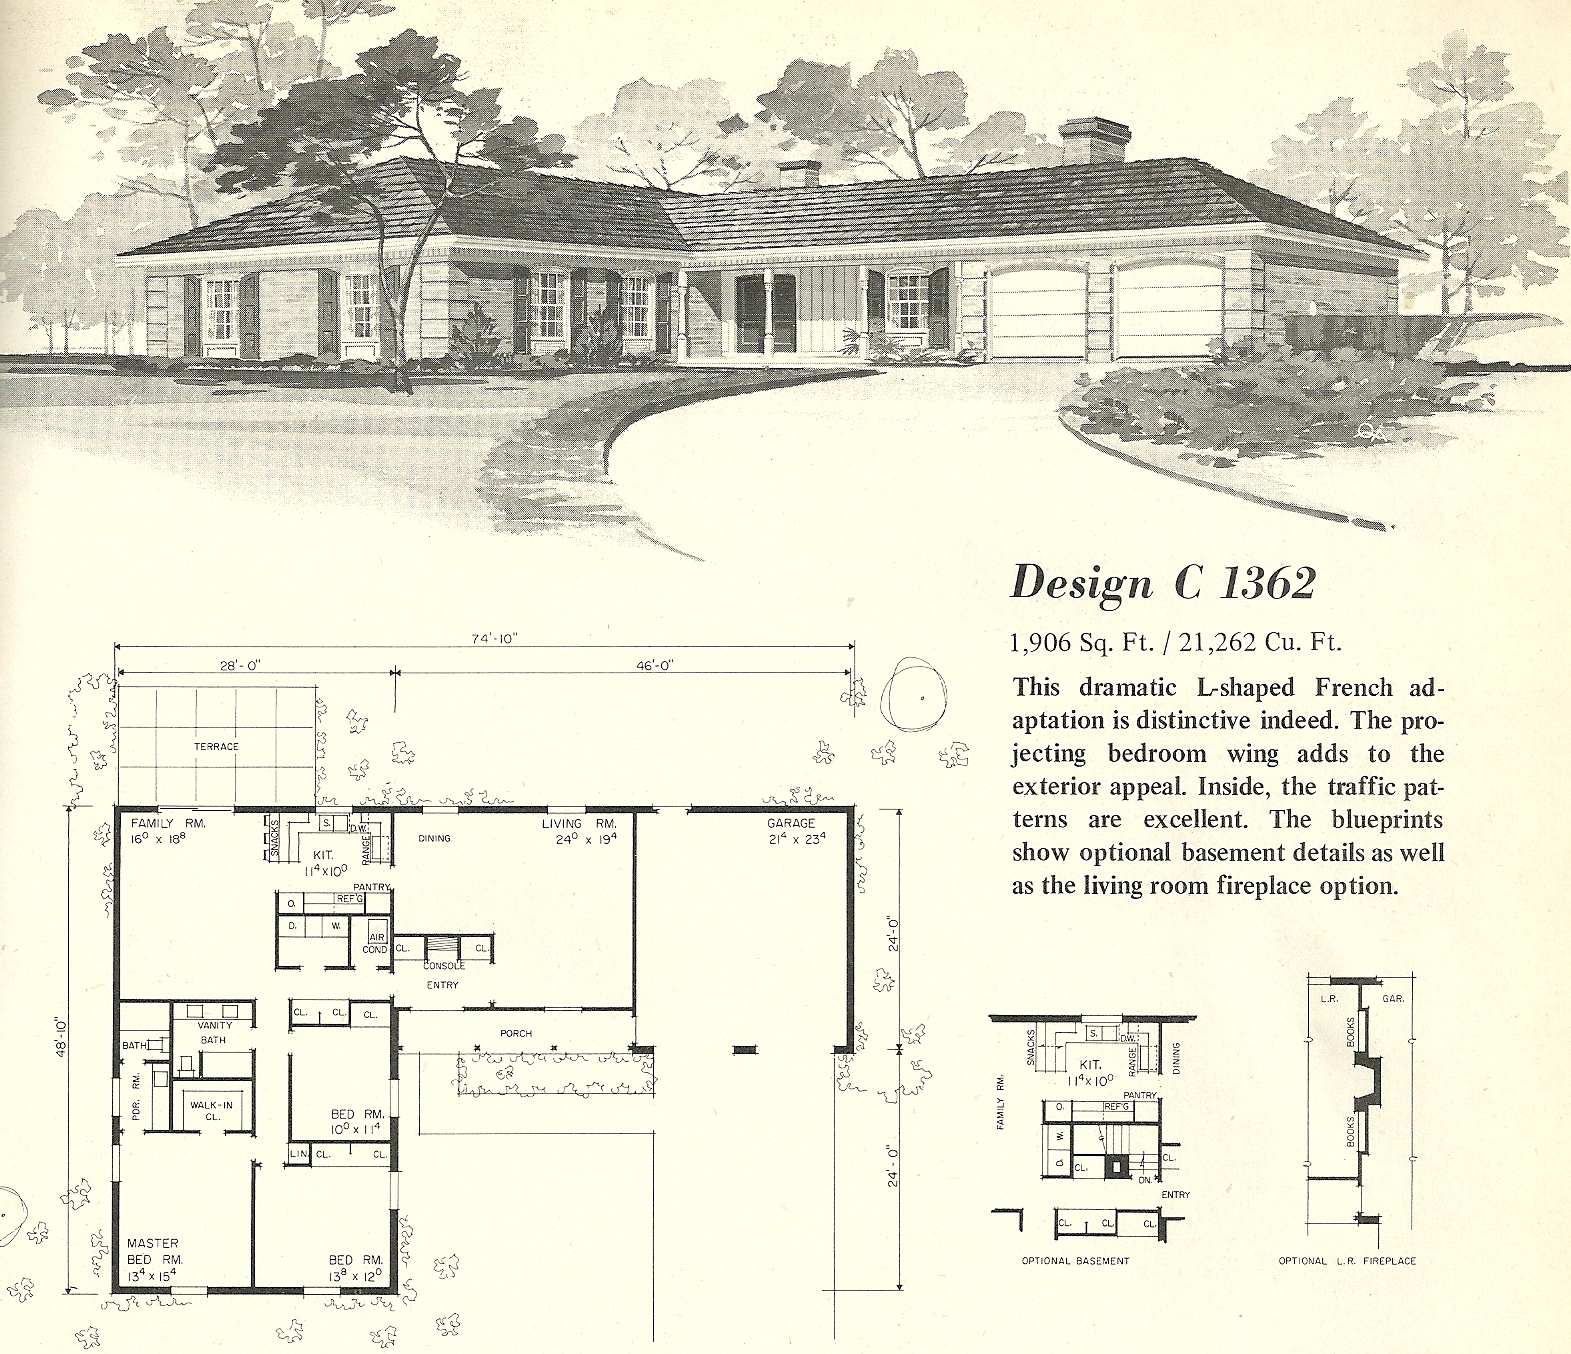 Vintage house plans 1362 antique alter ego for L shaped house plans modern